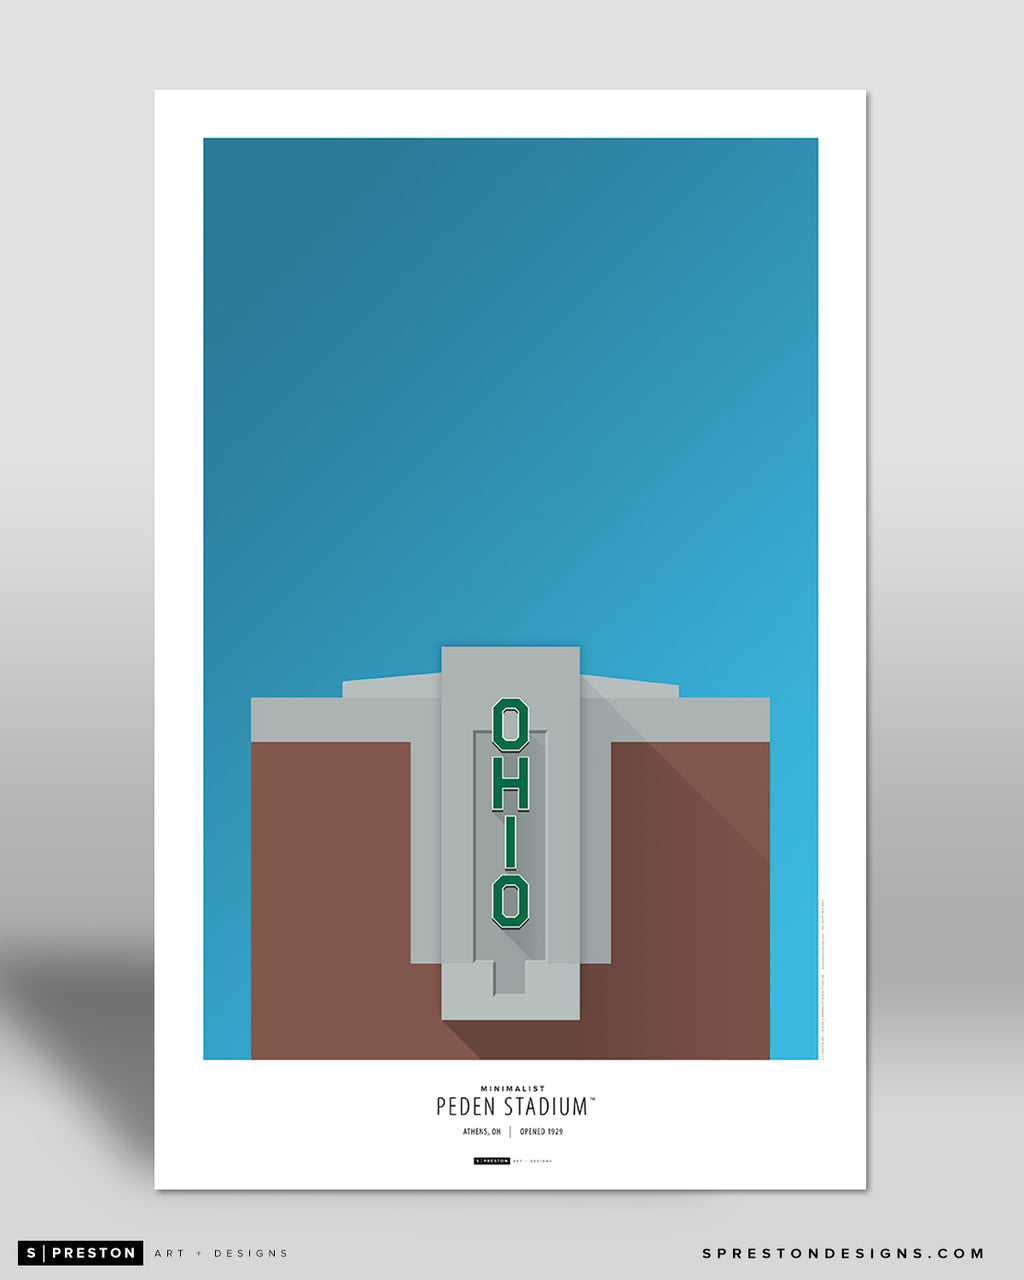 Minimalist Peden Stadium Poster Print Ohio University - S Preston